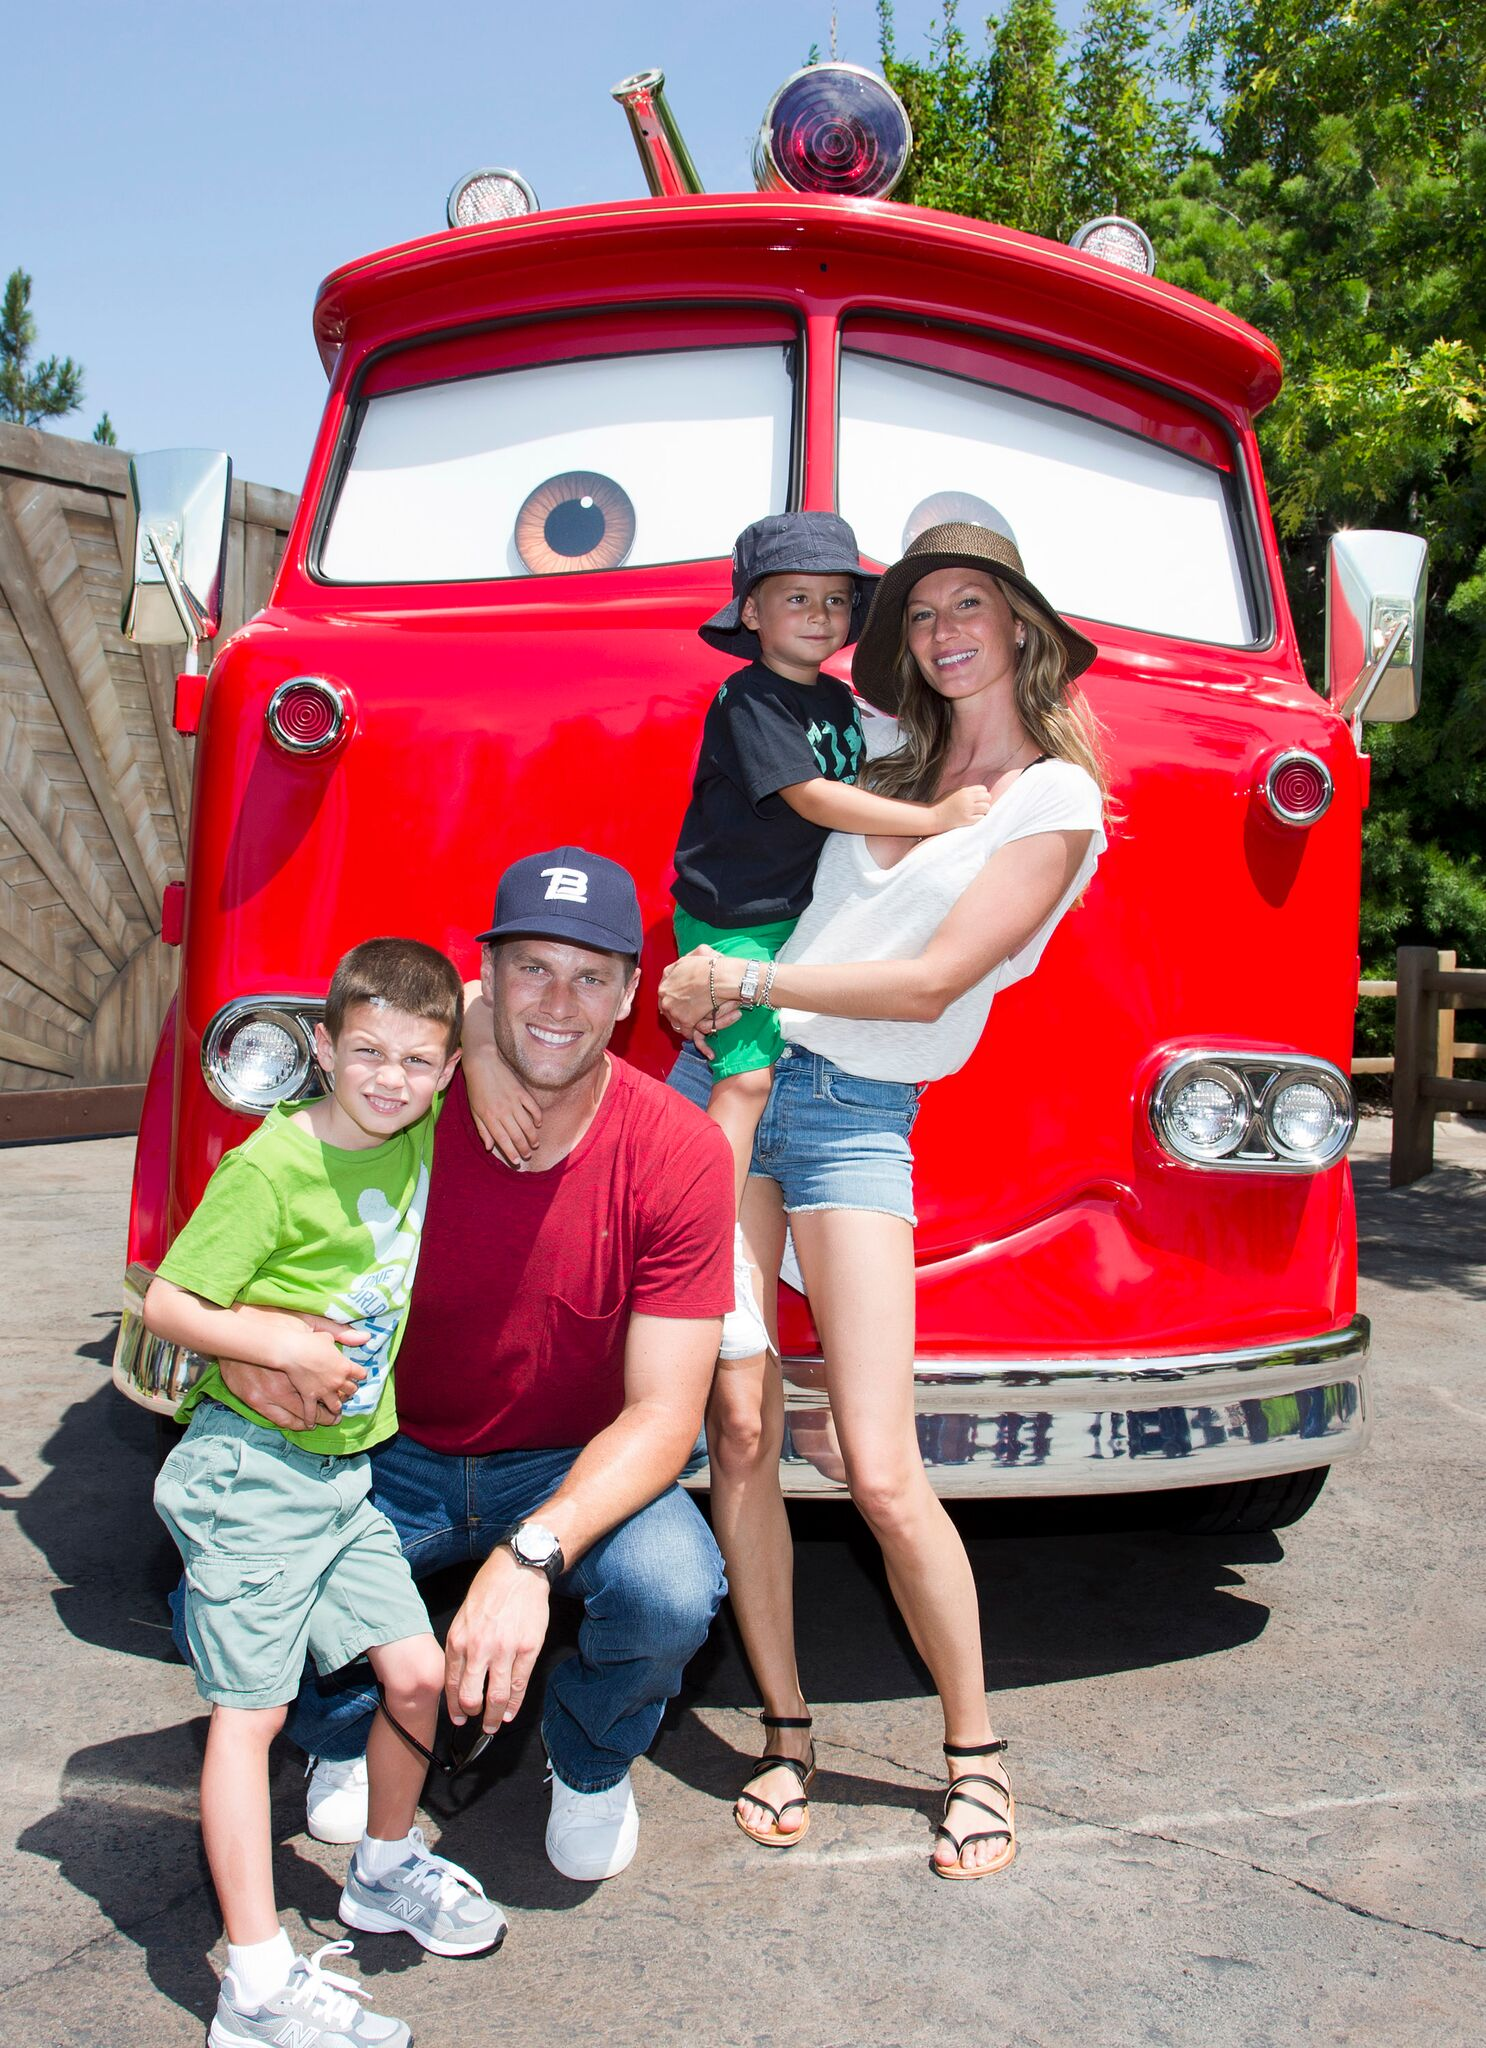 Tom Brady, his son Jack, 5, Gisele Bundchen, and their son Benjamin, 3, pose with Red the Fire Truck at Cars Land at Disney California Adventure park July 2, 2013  | Getty Images